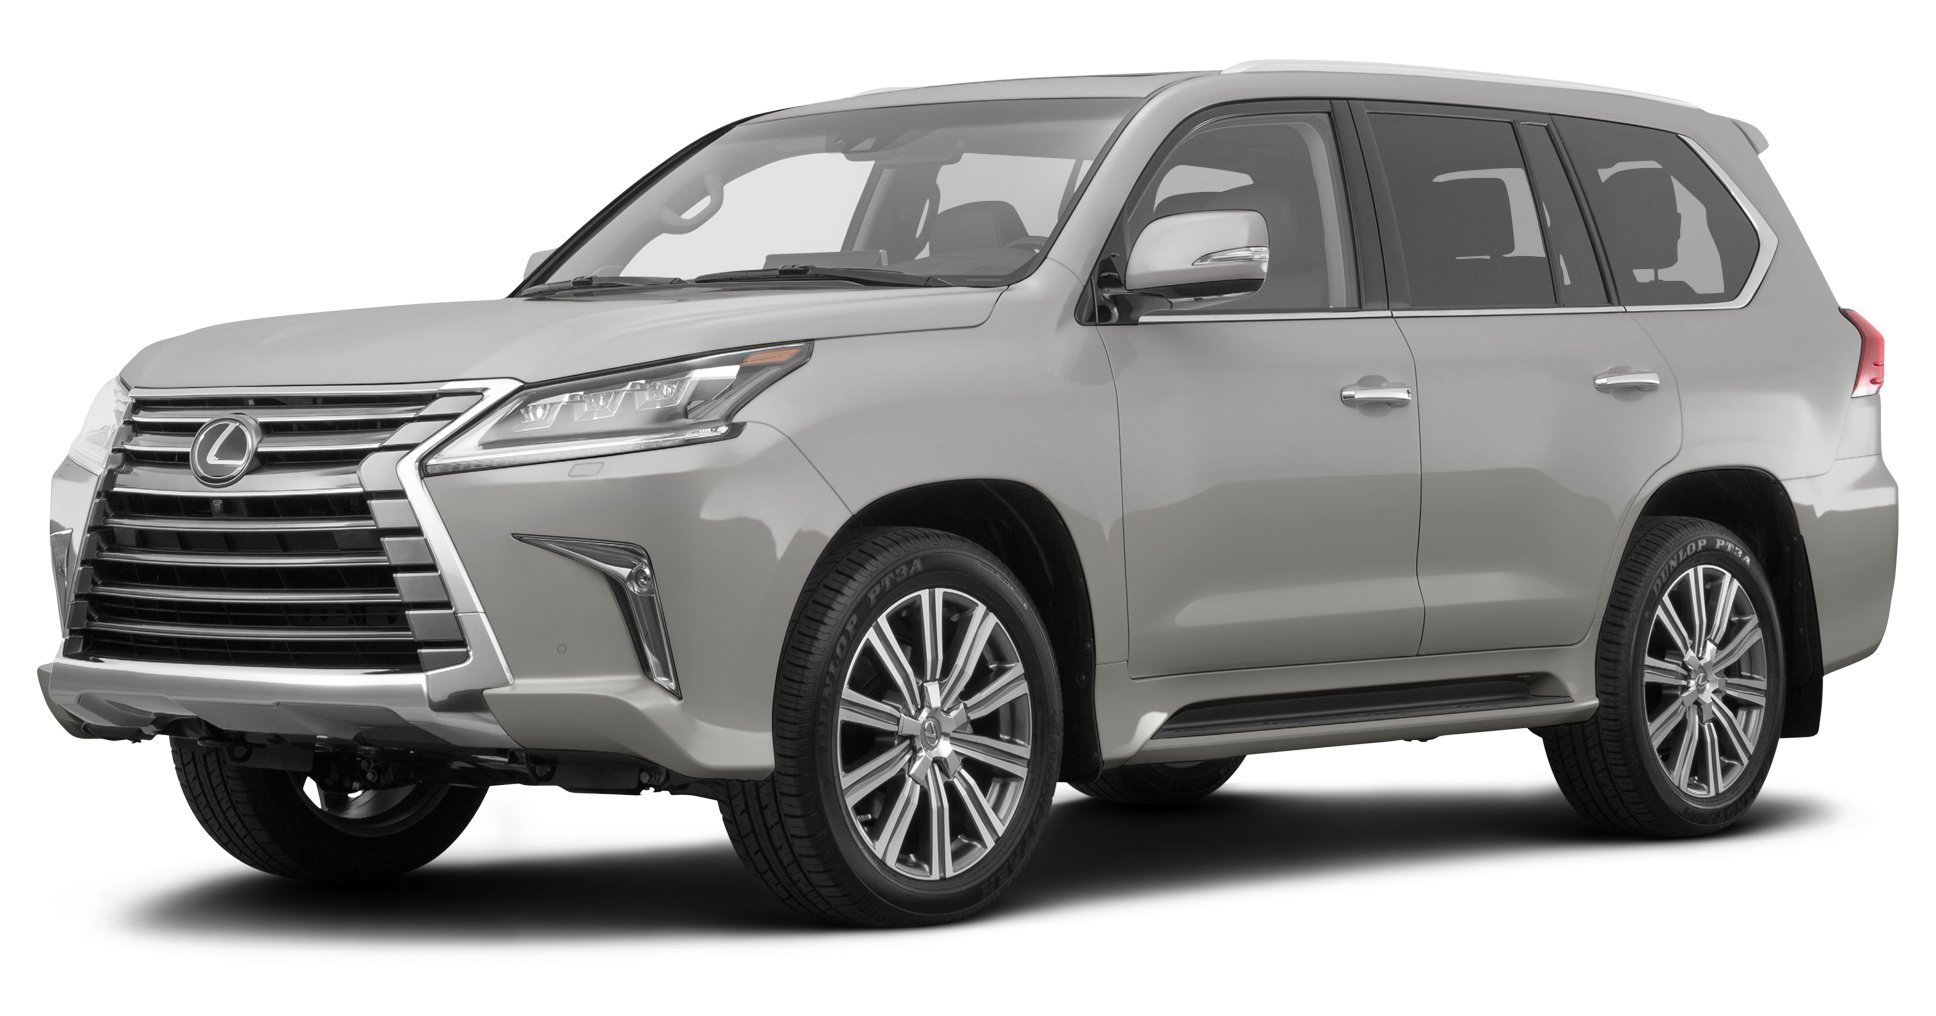 71SydKRR2lL Take A Look About 2009 Lexus Lx 570 with Fascinating Photos Cars Review